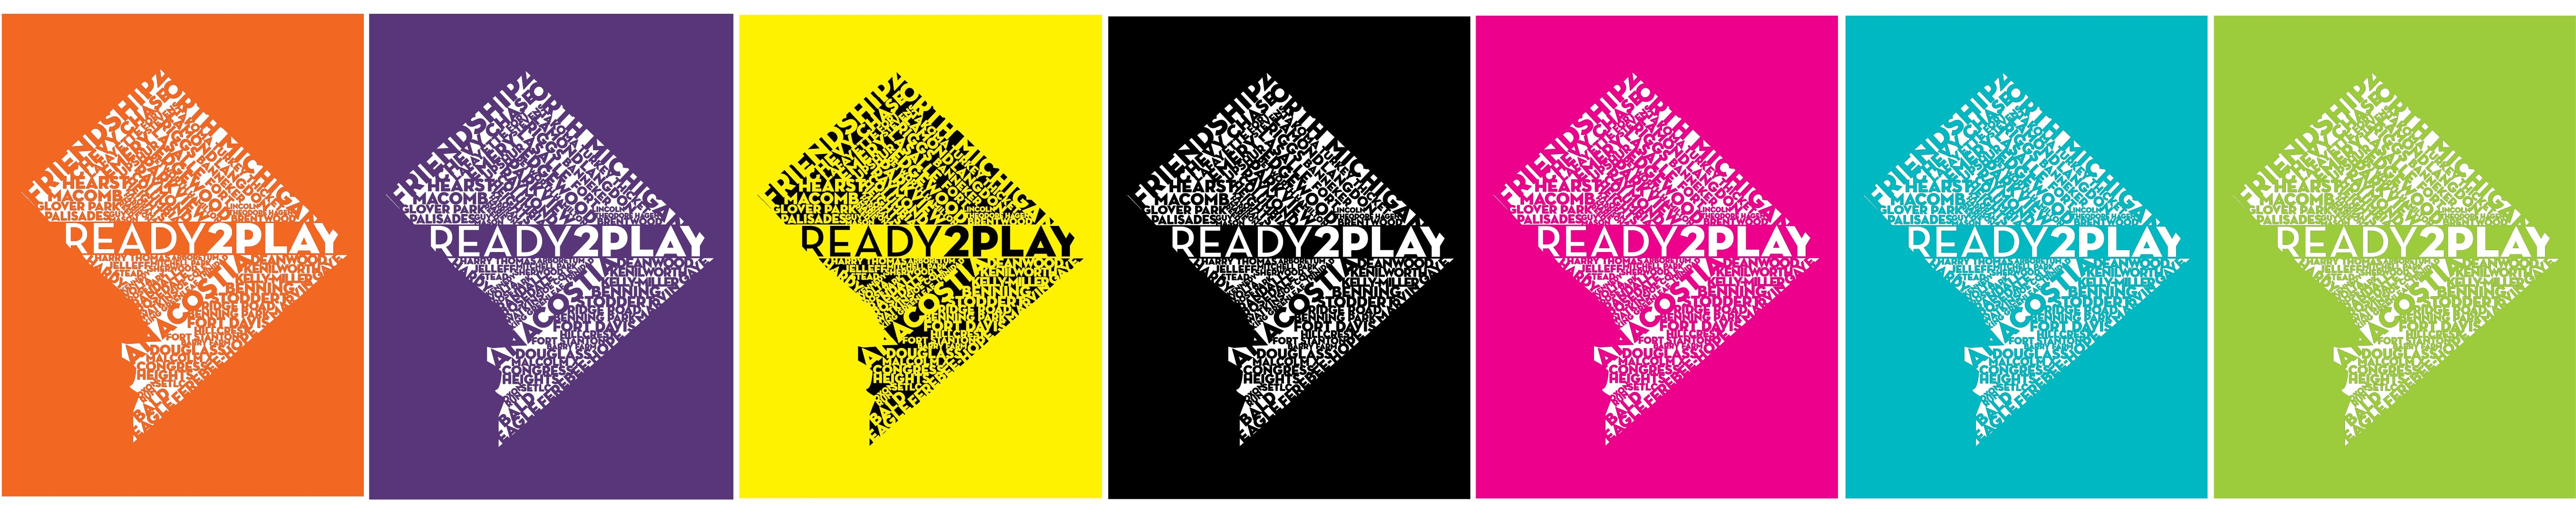 Warhol Style Ready2Play Banner